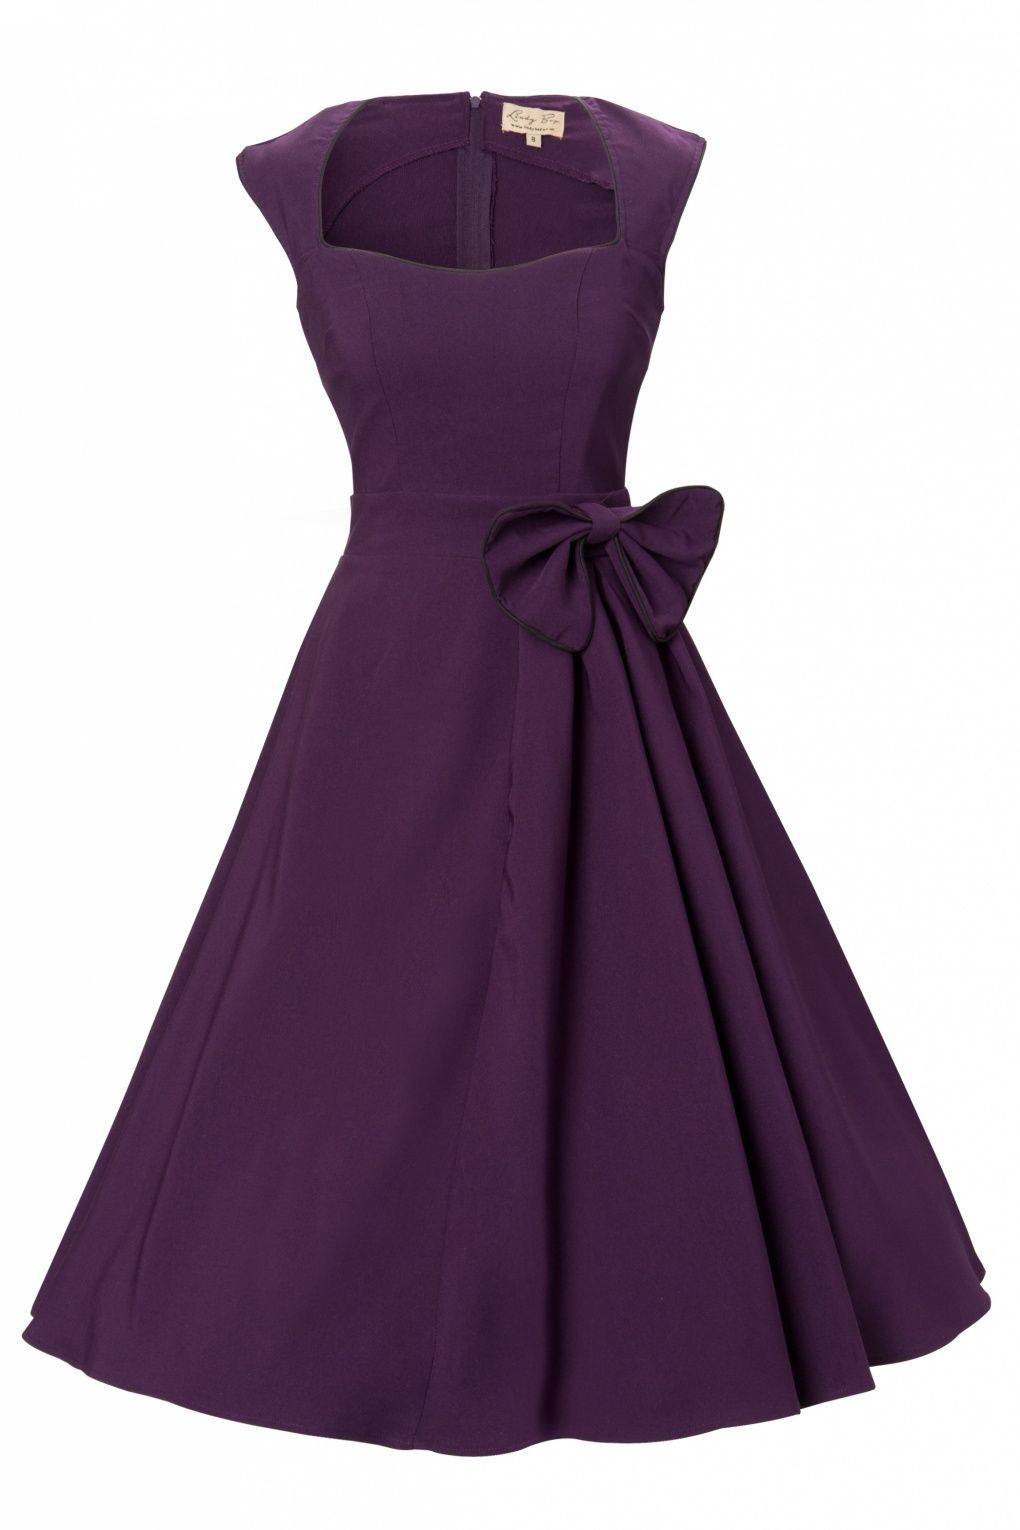 50662a206eb5 I love the cut of this dress! And it comes in the loveliest of colors! ~G   66